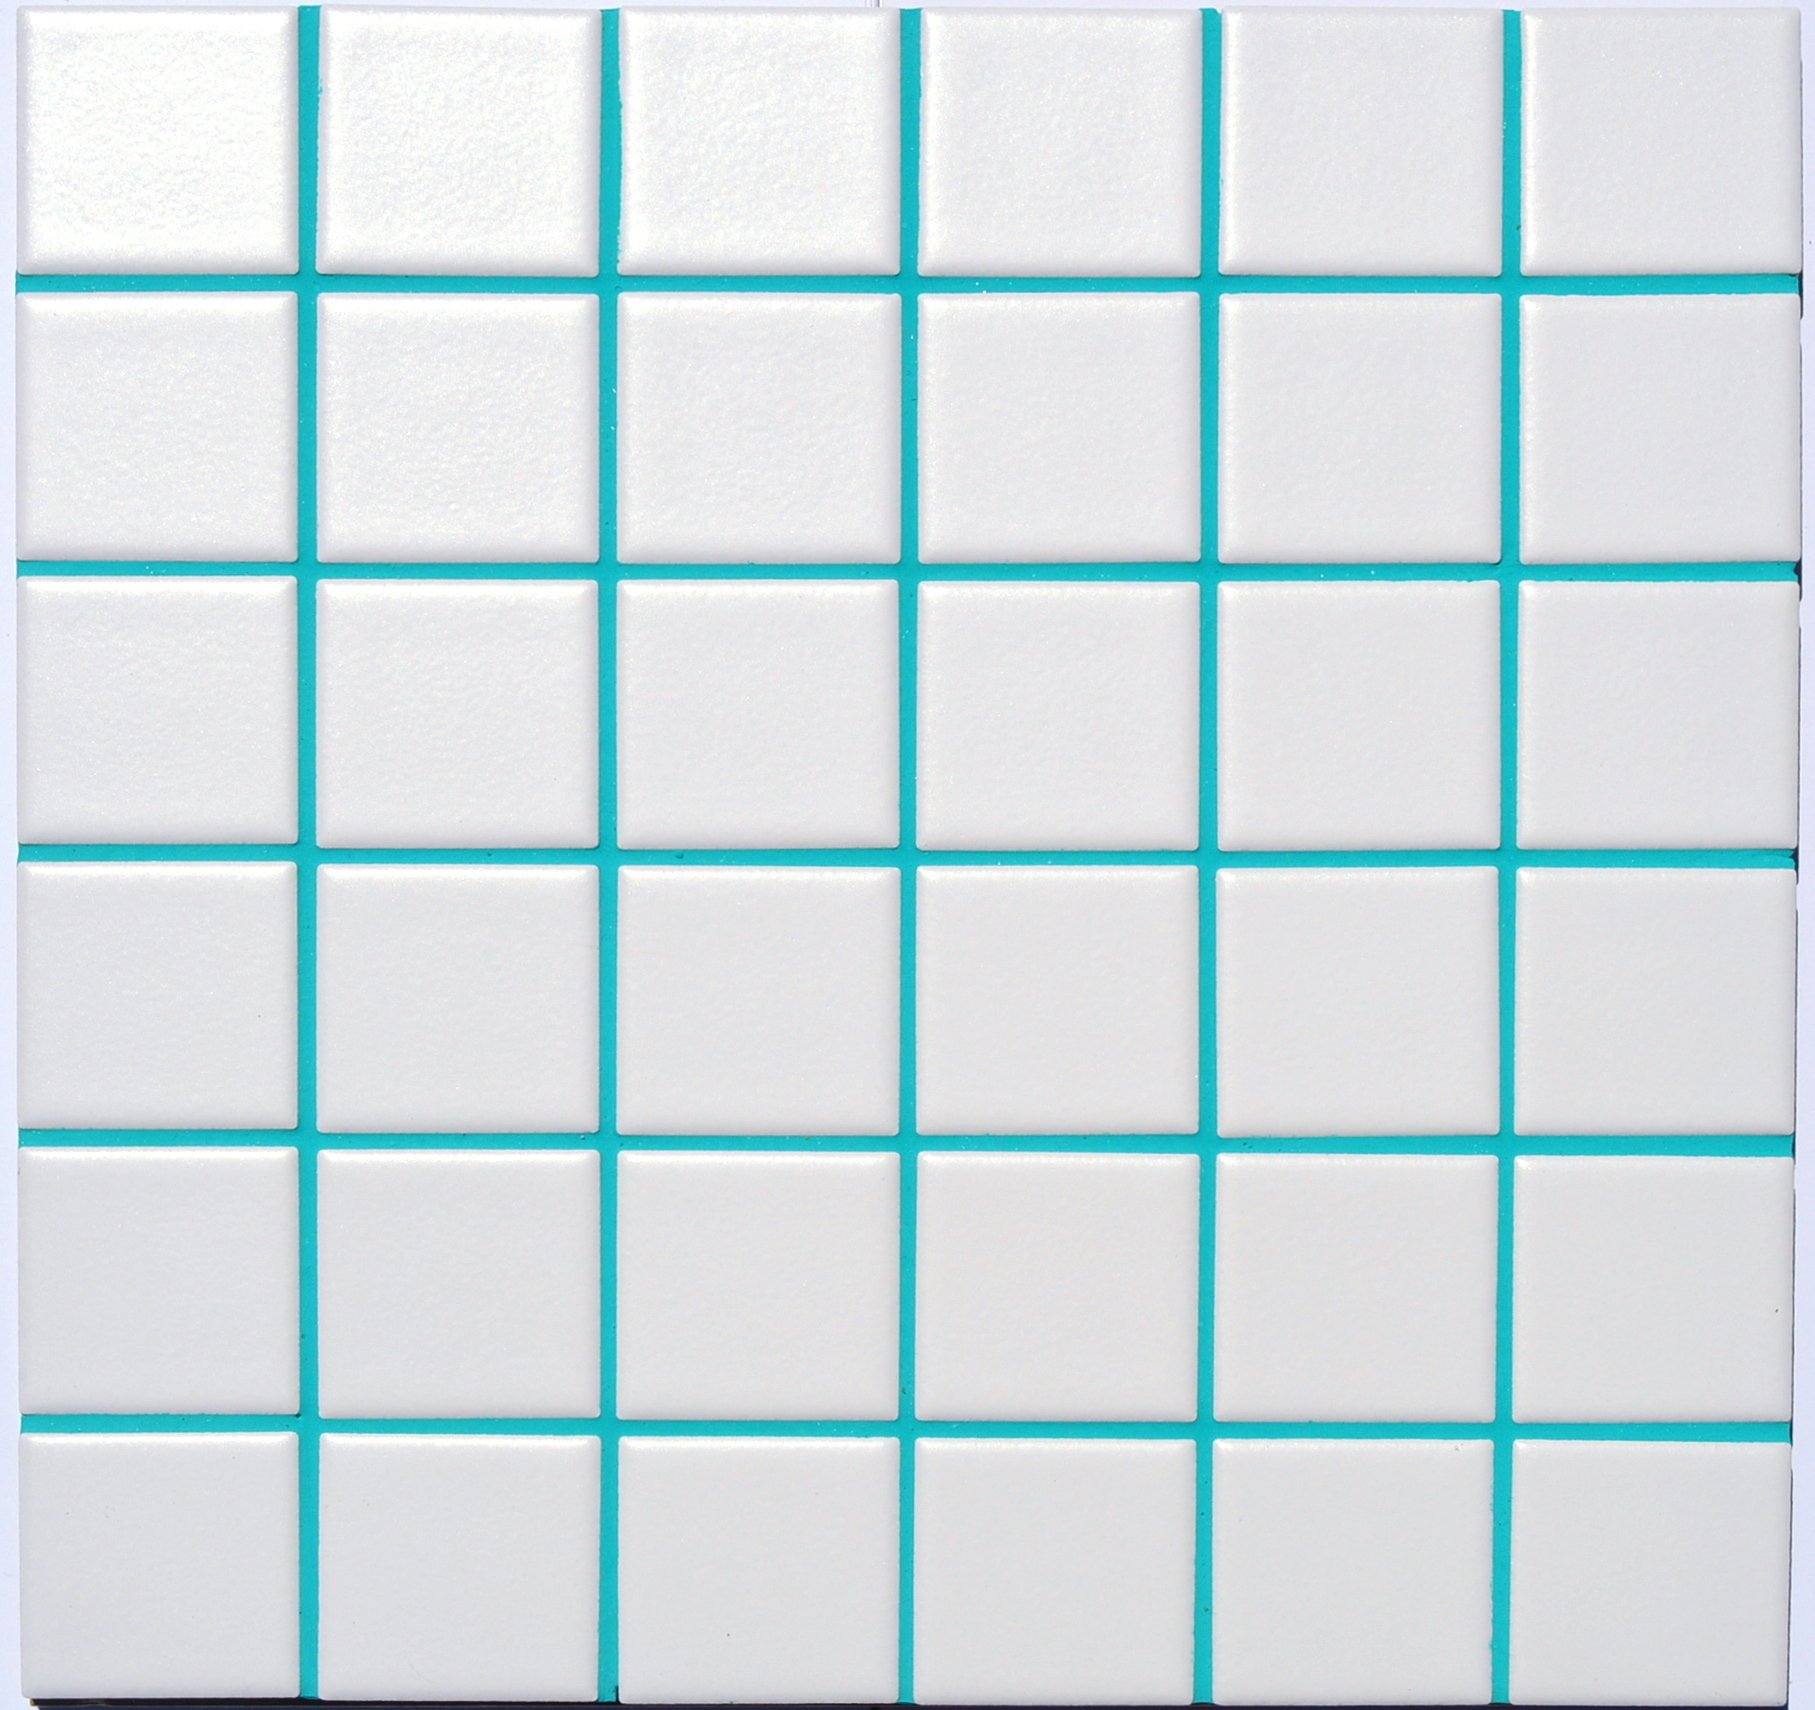 Turquoise Unsanded Tile Grout - 5 lbs - with Aqua Pigment in The Mix